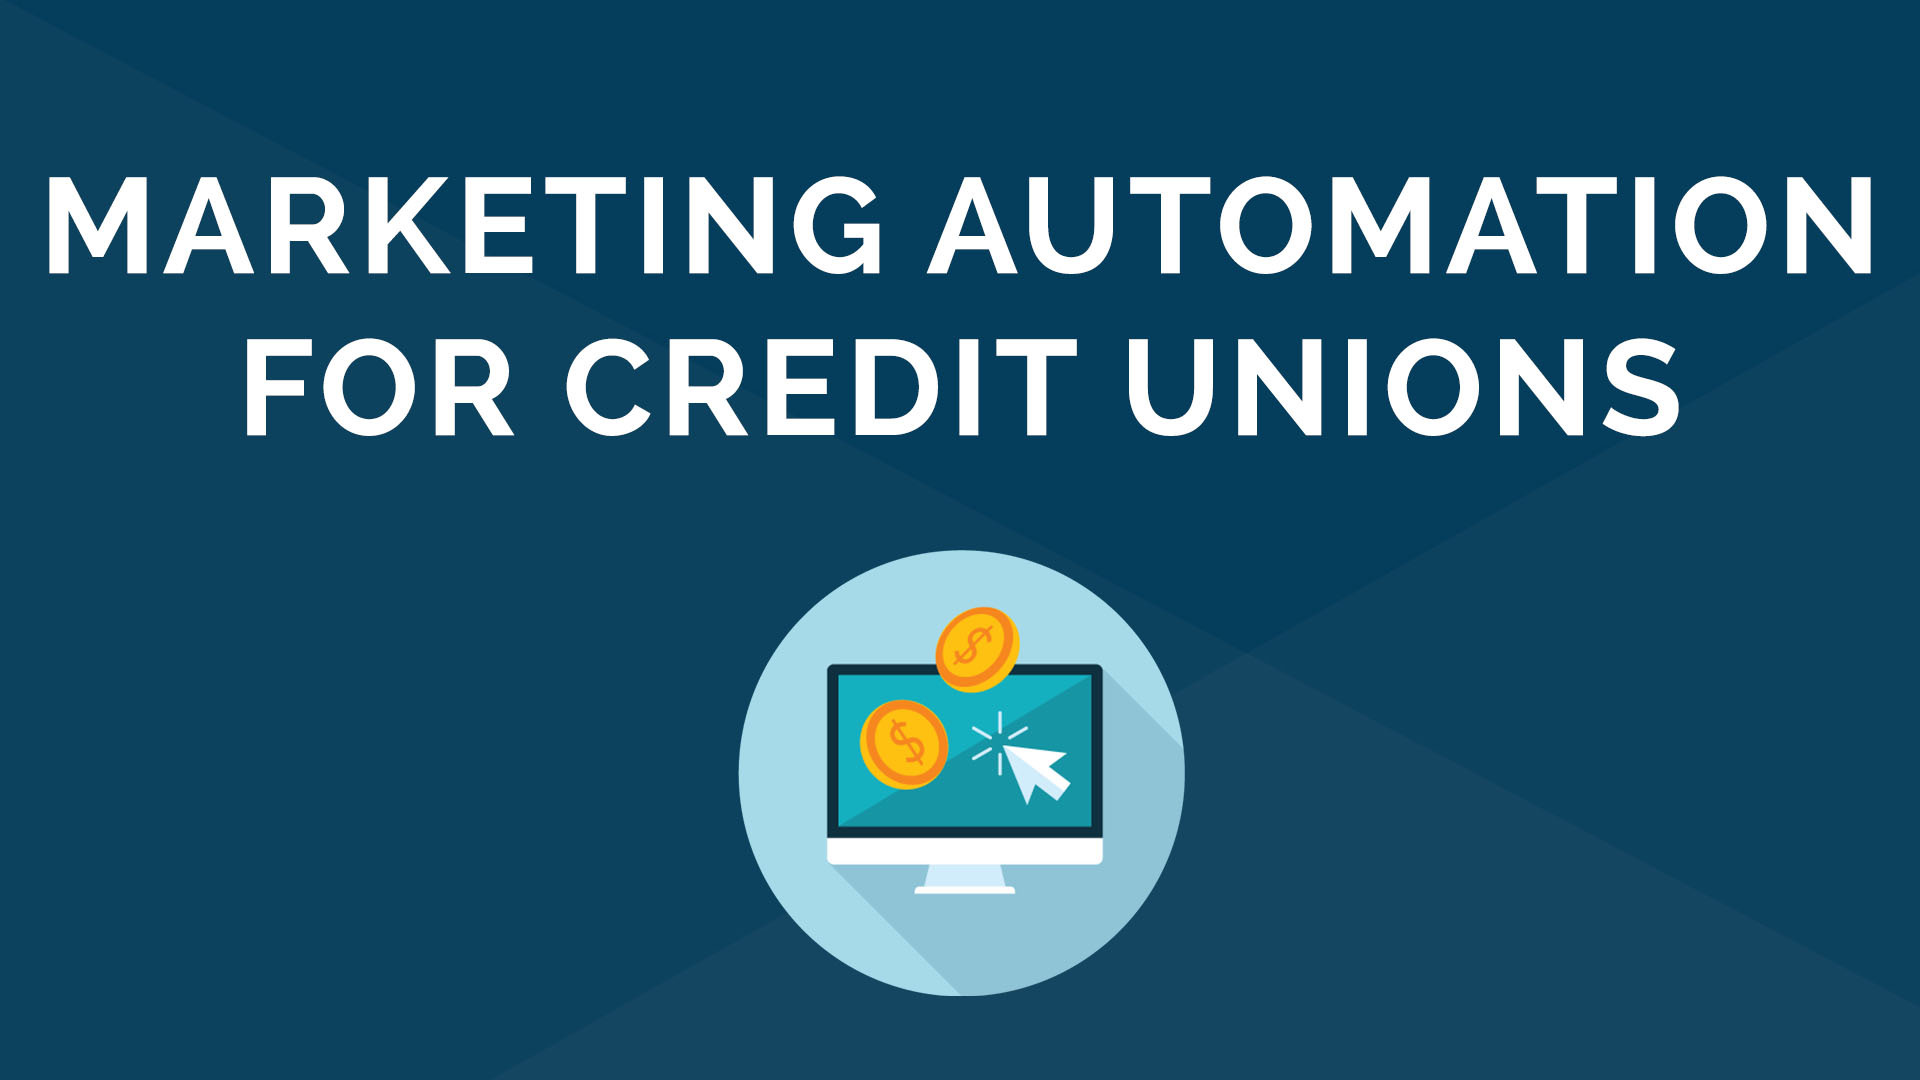 Marketing Automation for Credit Unions